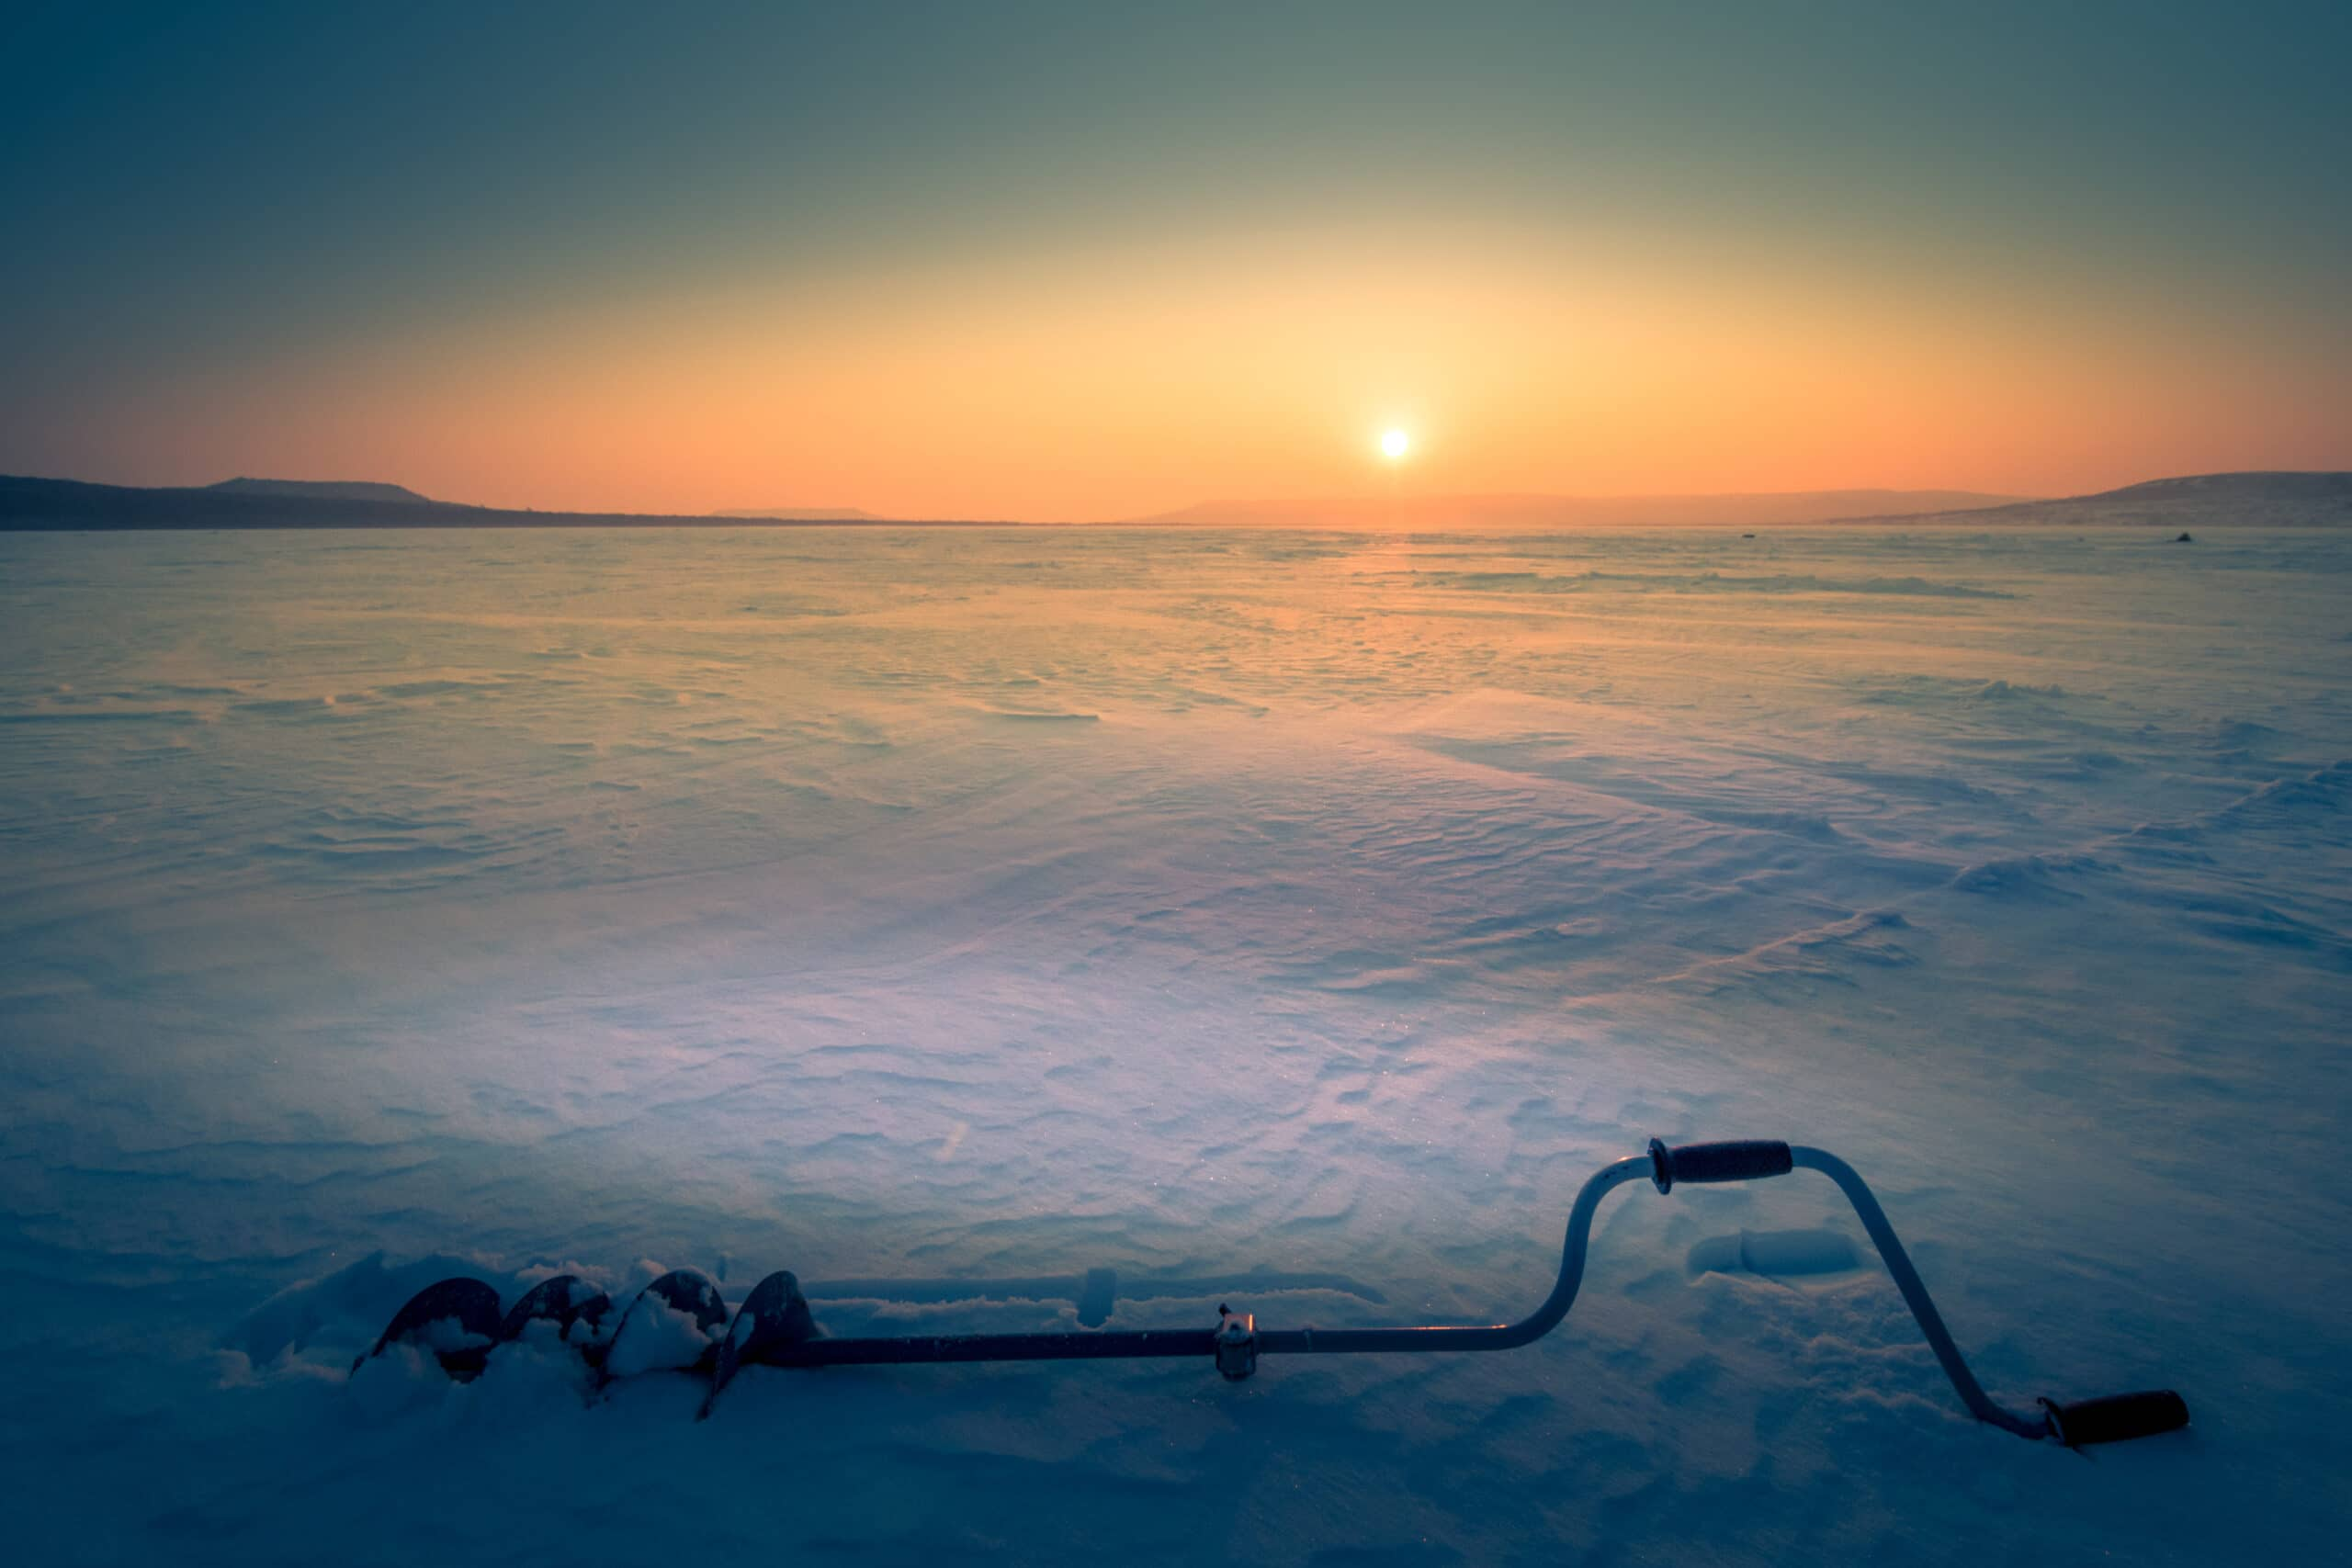 Frozen lake with sun in background and an ice auger in the foreground.